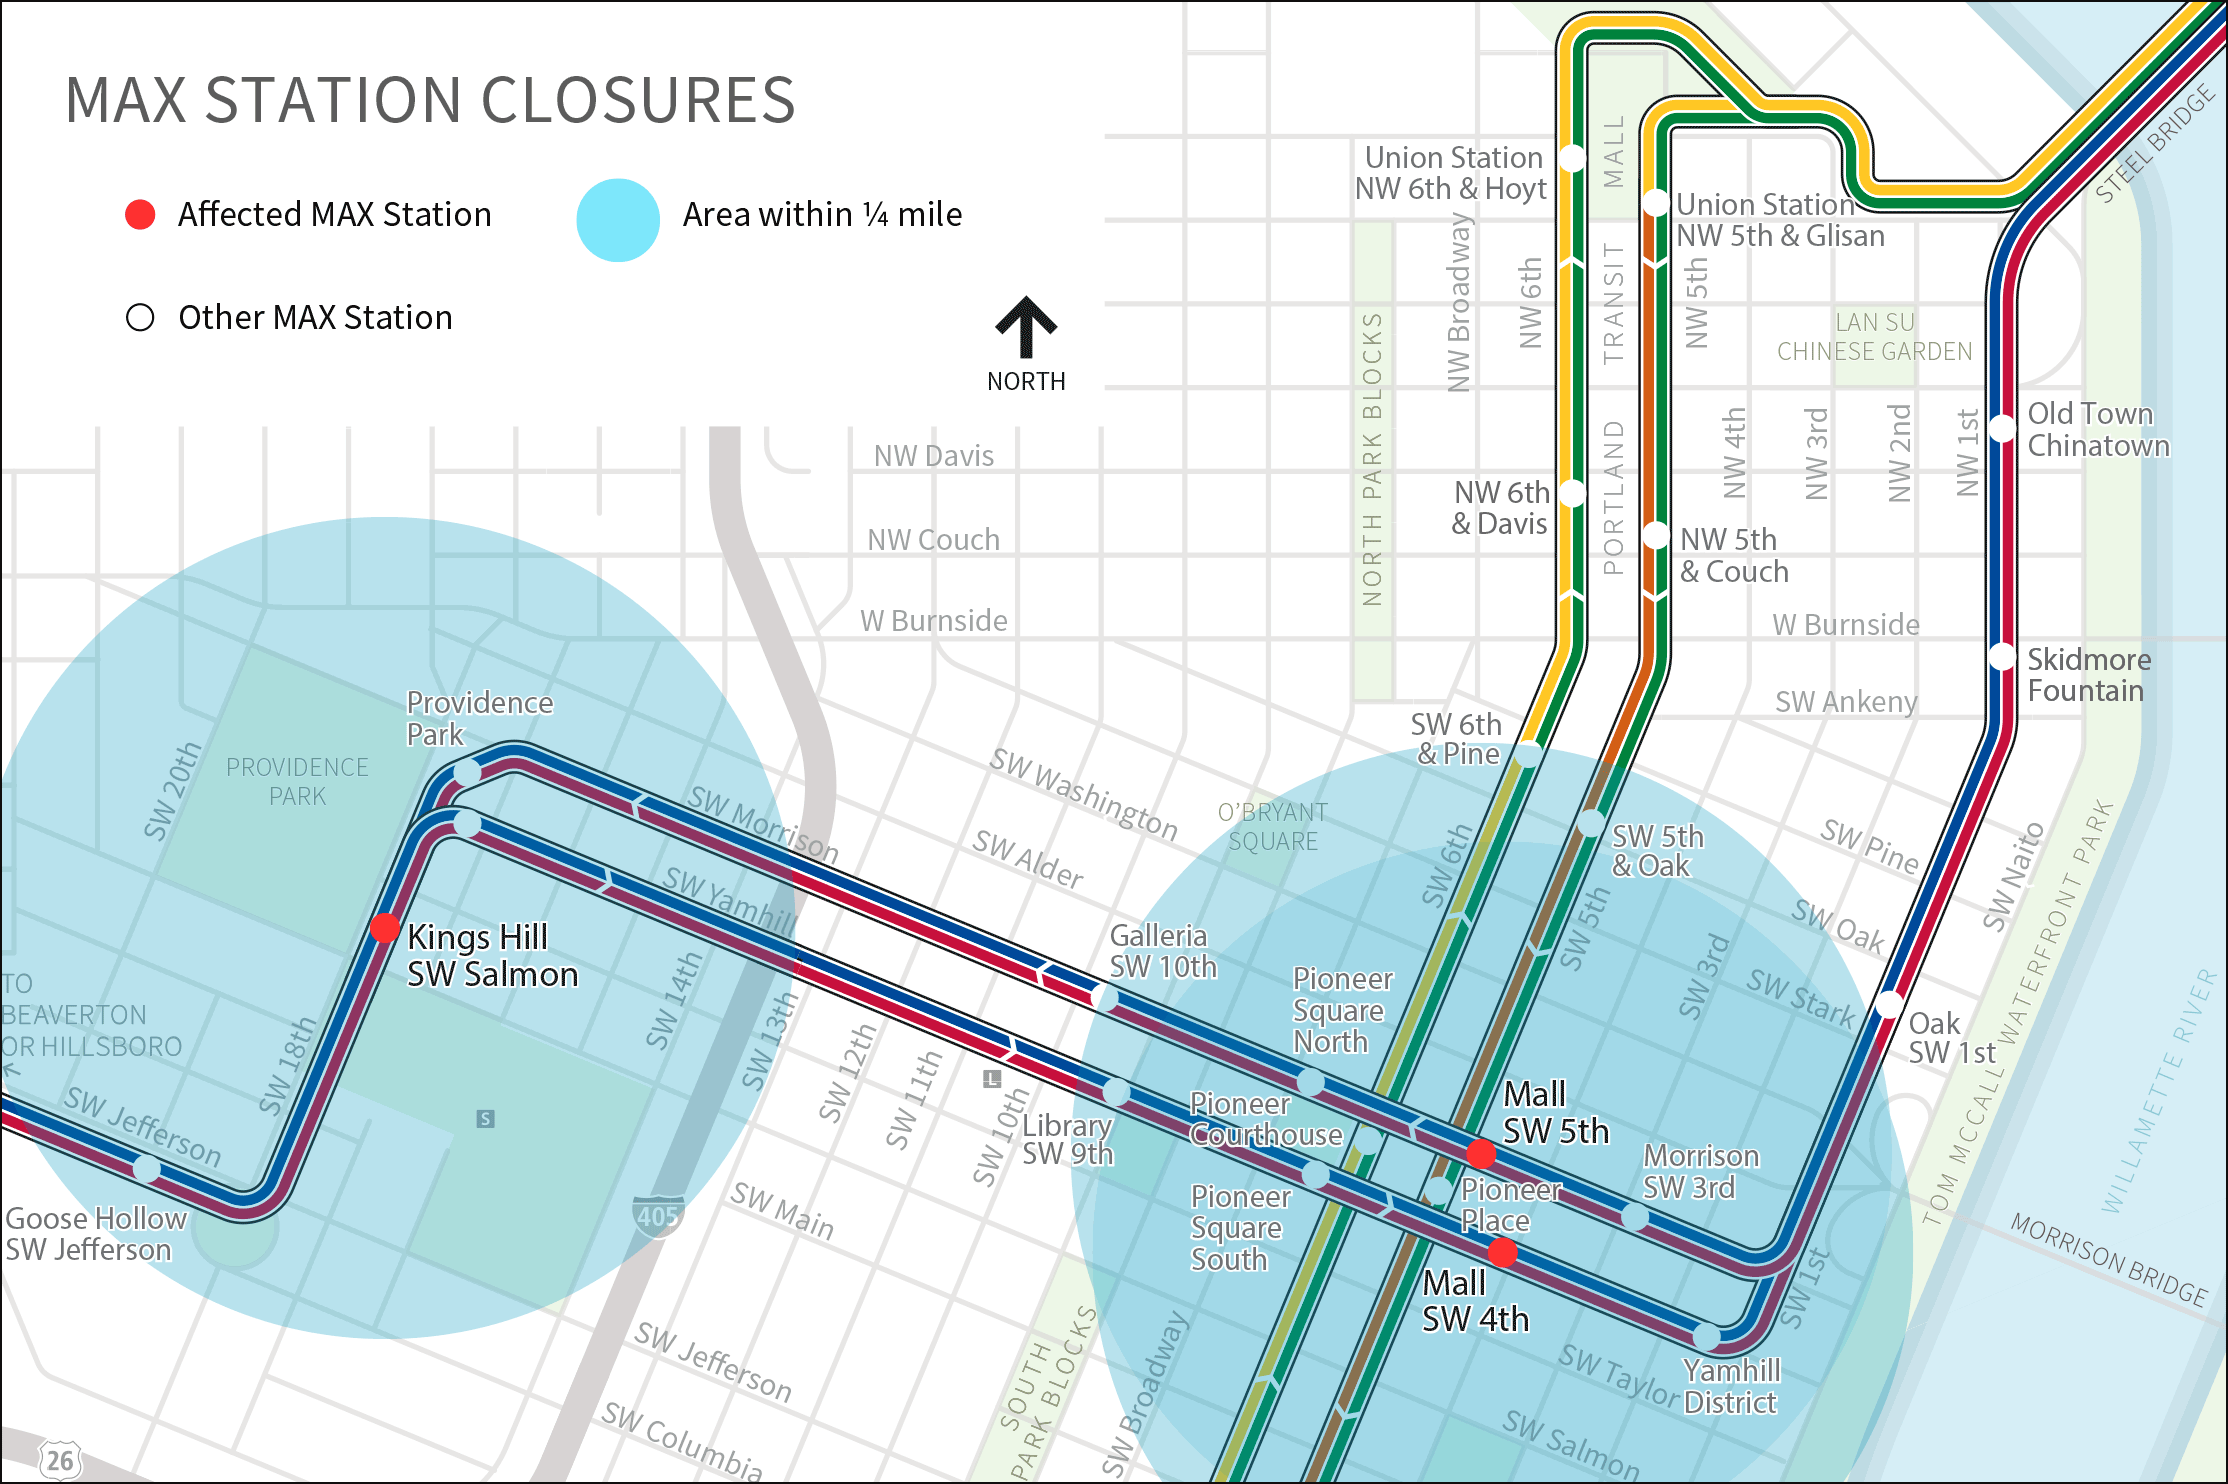 MAX Station Closures map